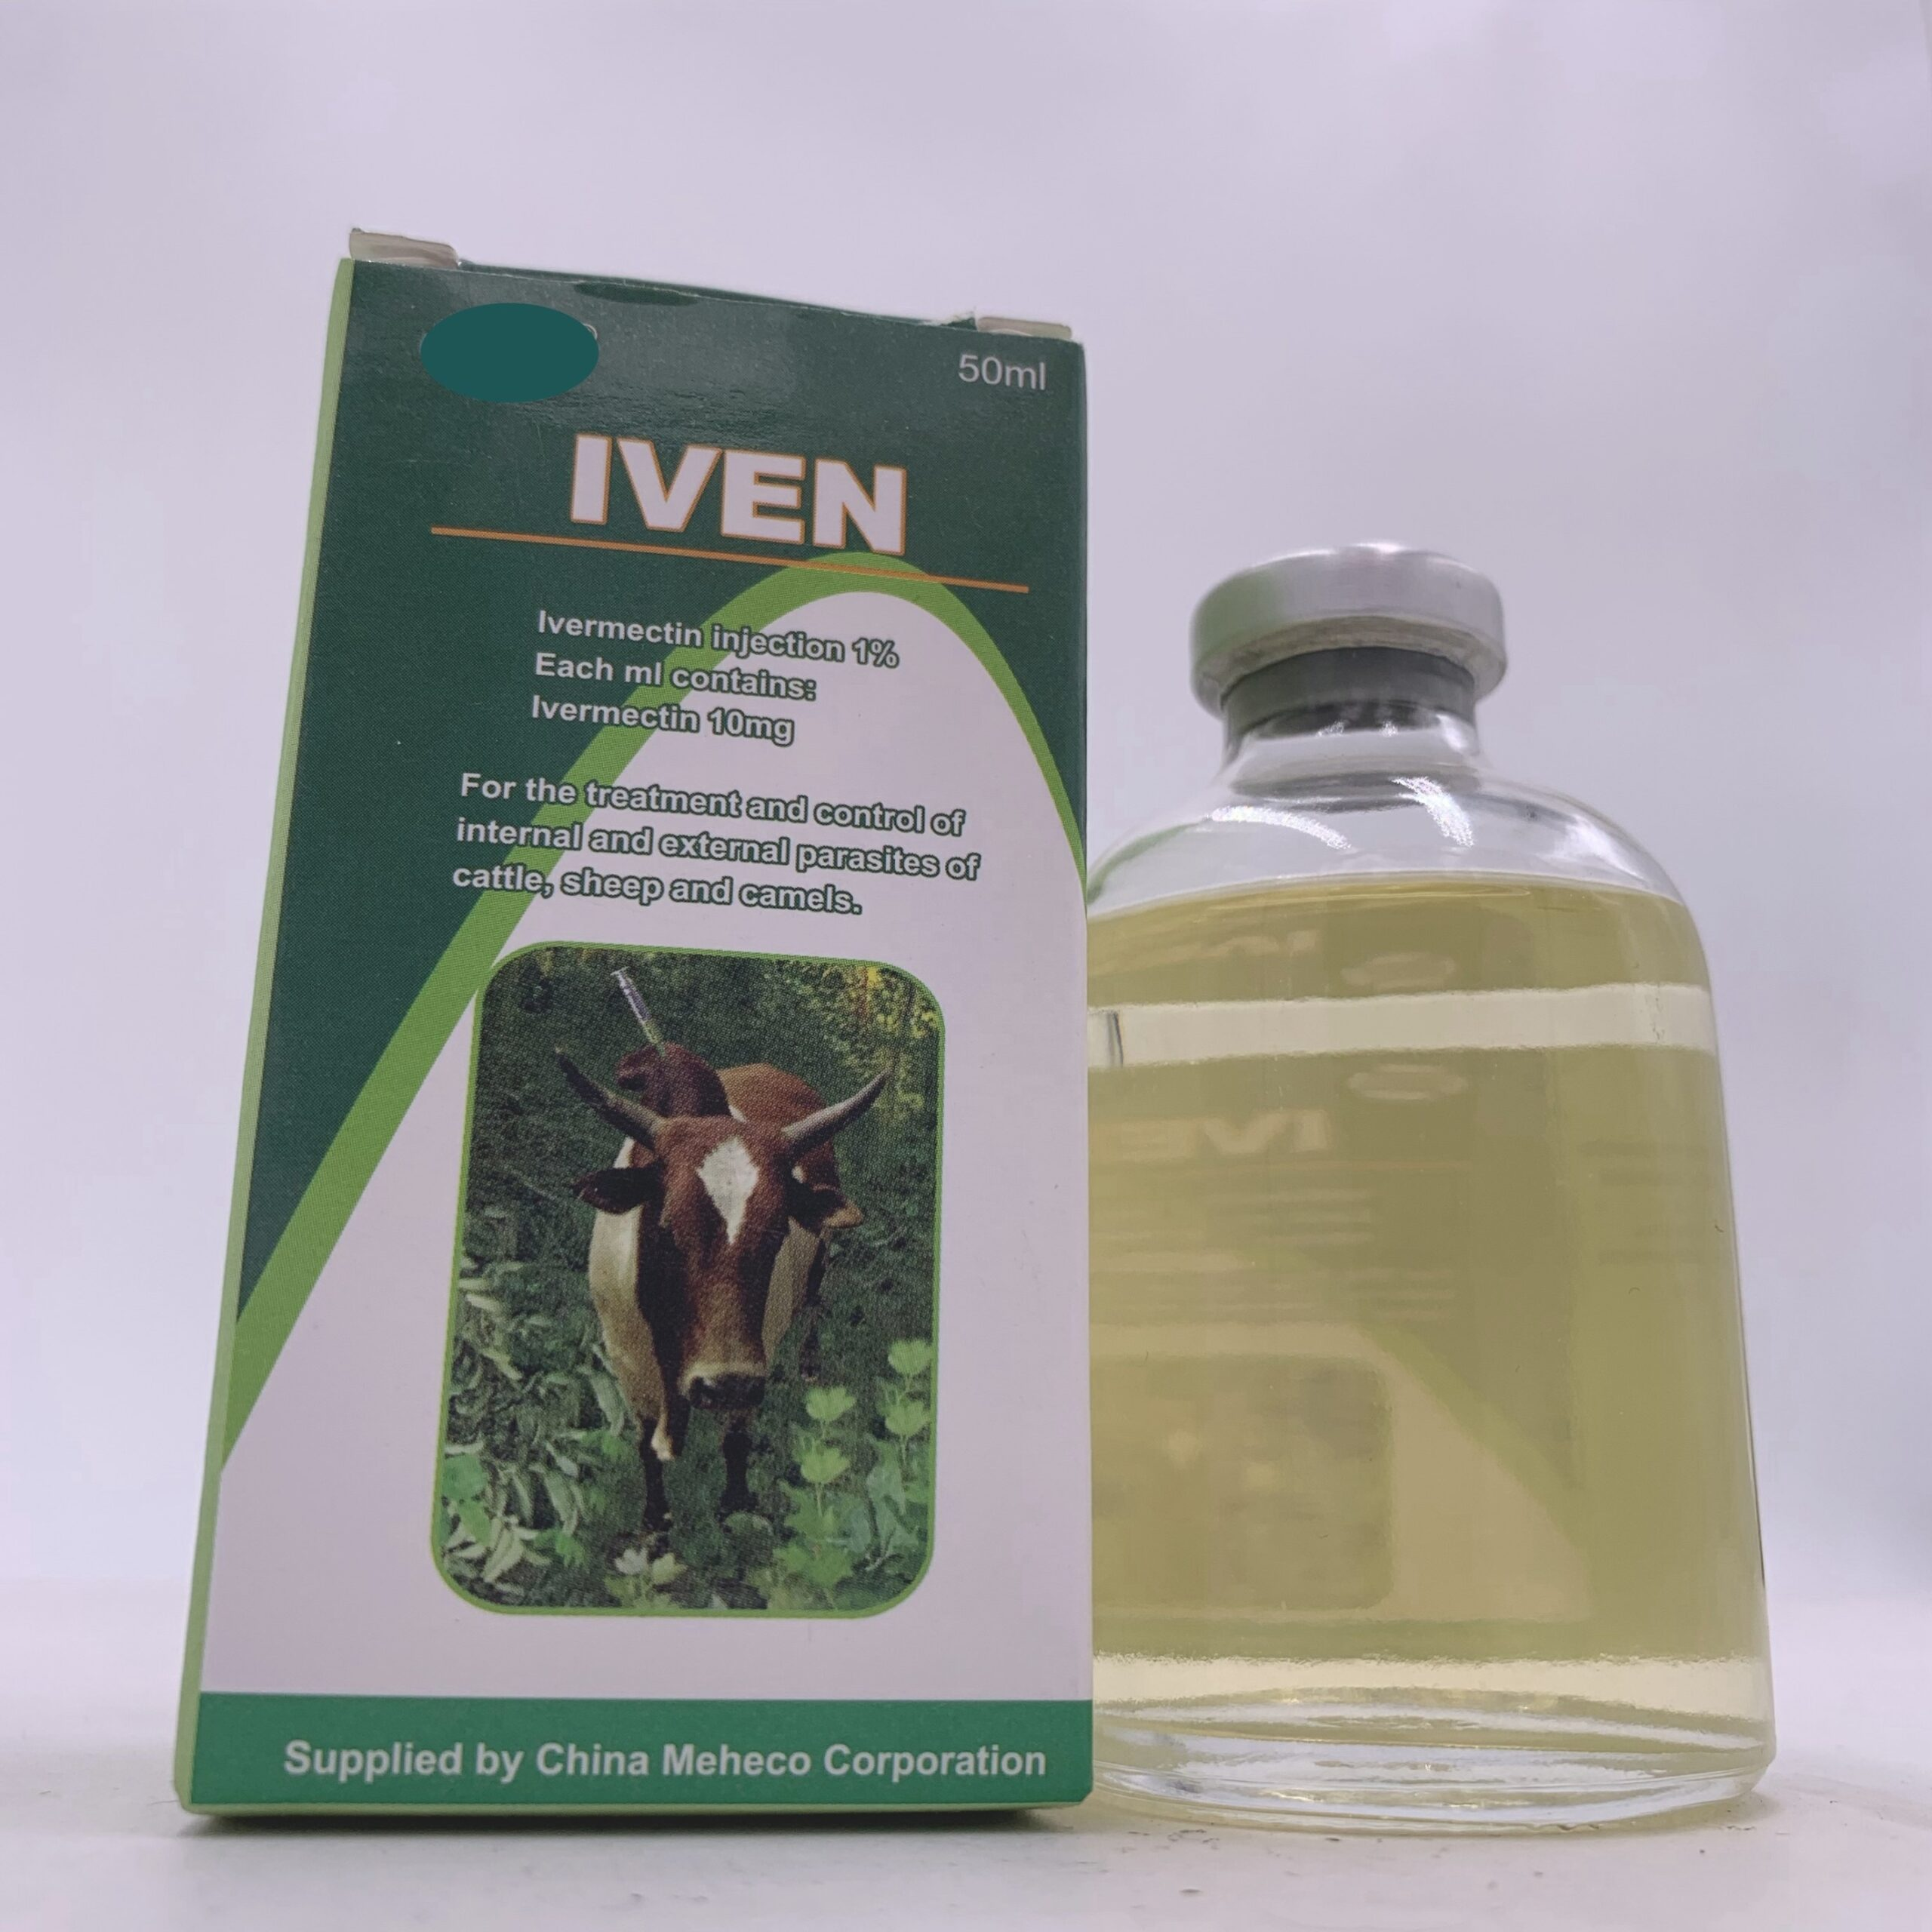 1% 100Ml Injection Price Ivermectin For Dog - Buy throughout Ivermectin Dosage For Dogs